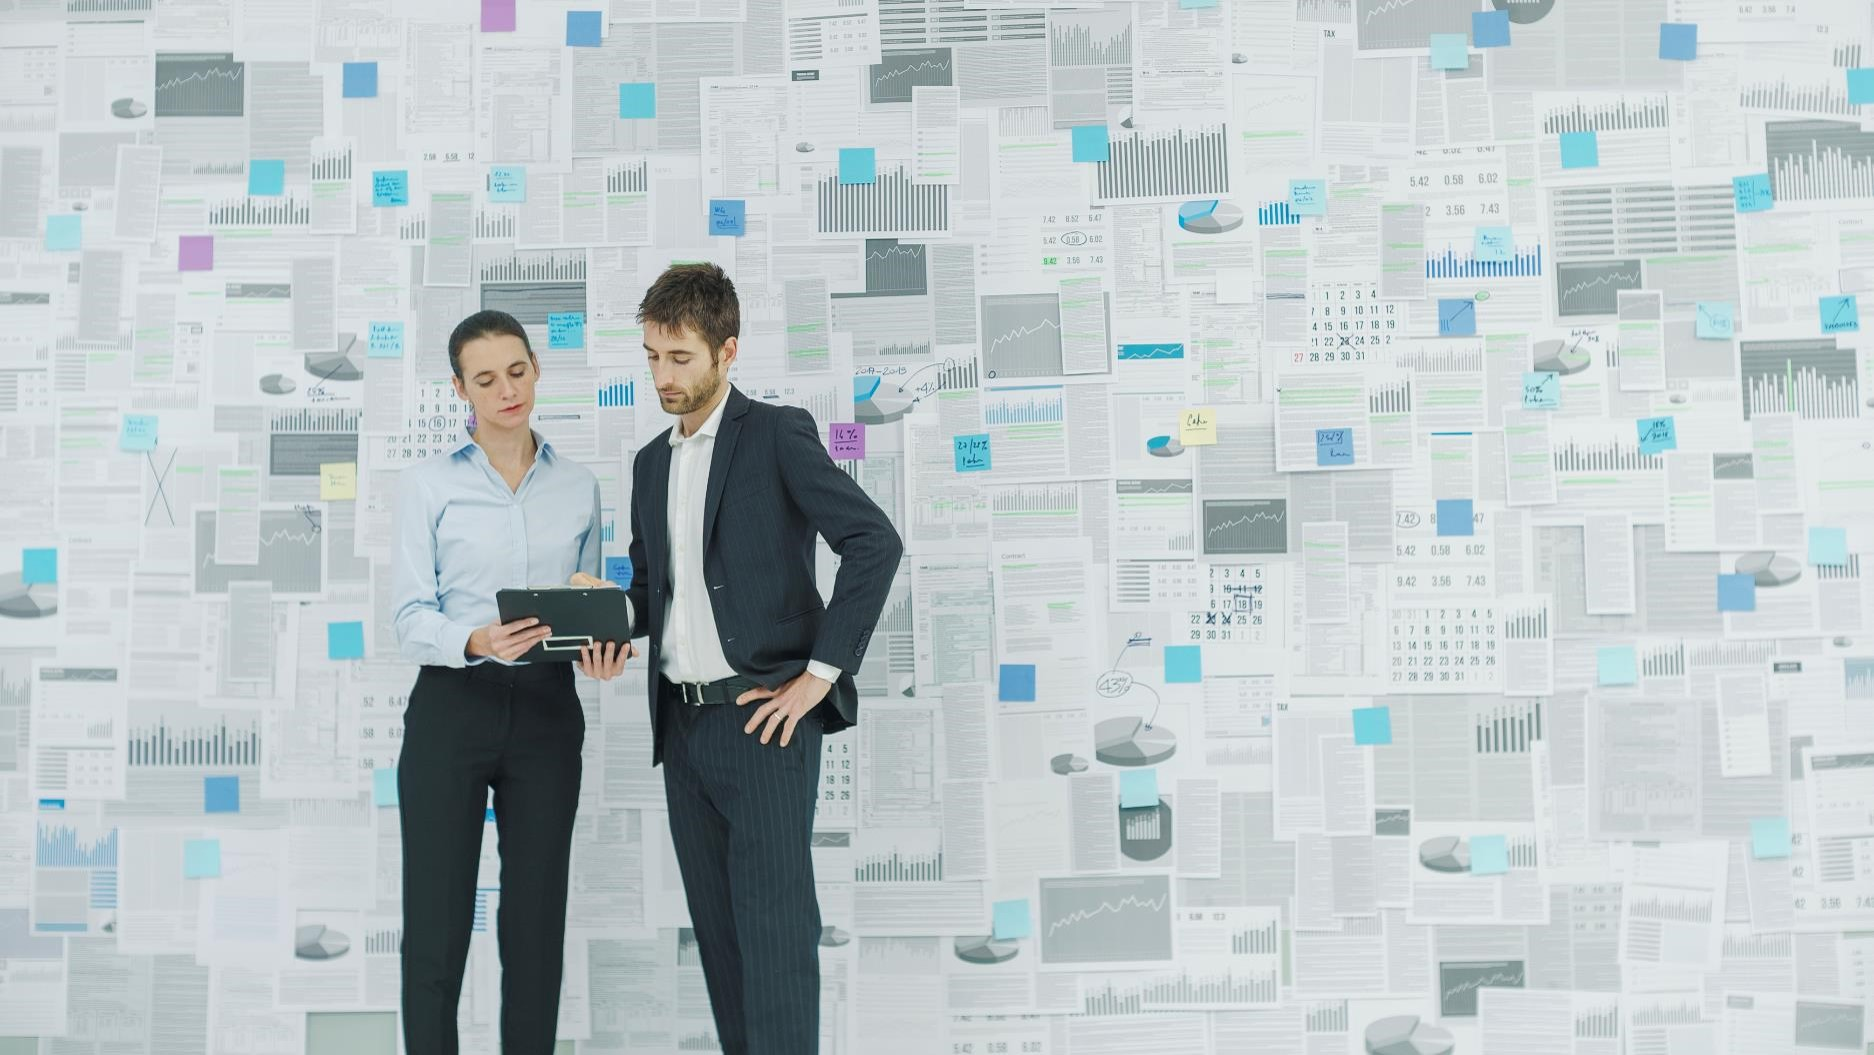 Maximize value from your technology investments